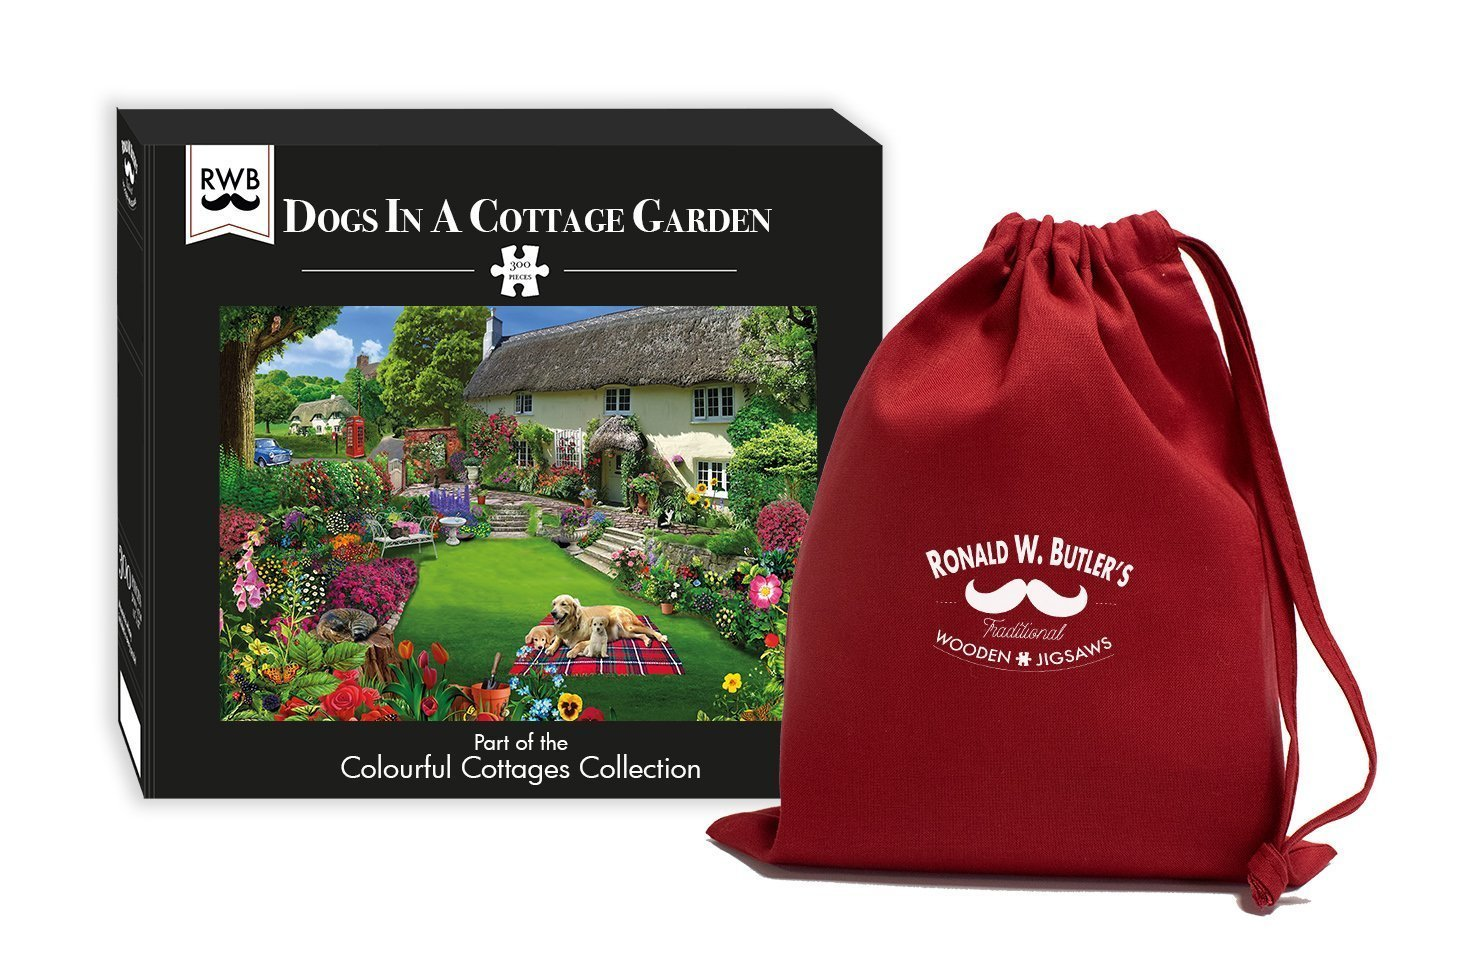 Dogs in a Cottage Garden 300 Piece Wooden Jigsaw Puzzle - All Jigsaw Puzzles